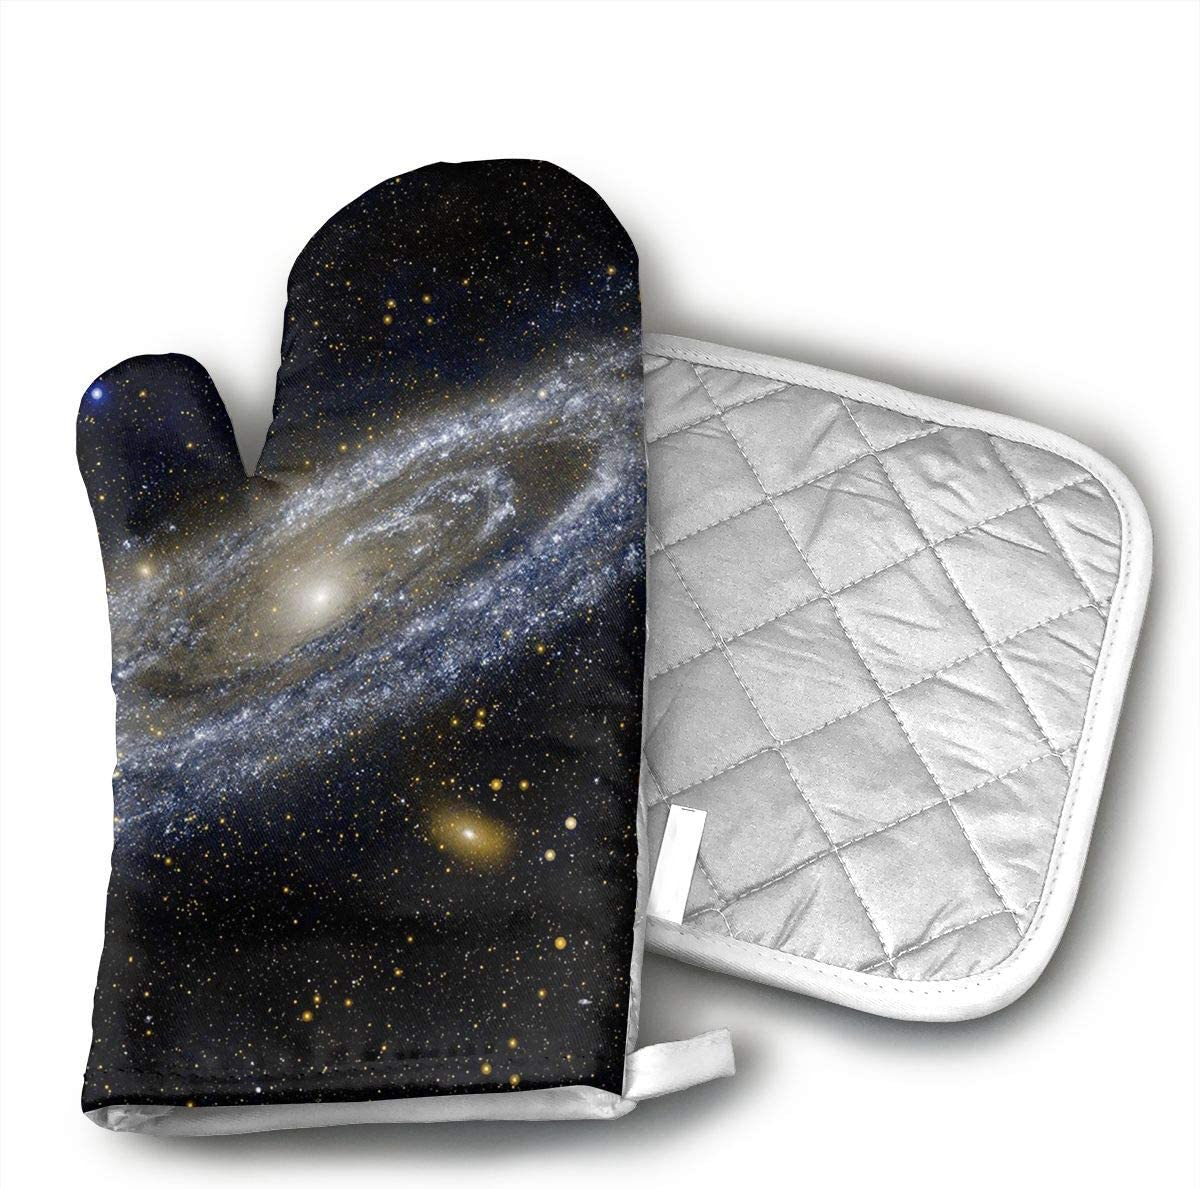 QEDGC NASA Andromeda Galaxy Space Kitchen Oven Mitts Oven Gloves for BBQ Cooking Set Baking Grilling Barbecue Microwave Machine